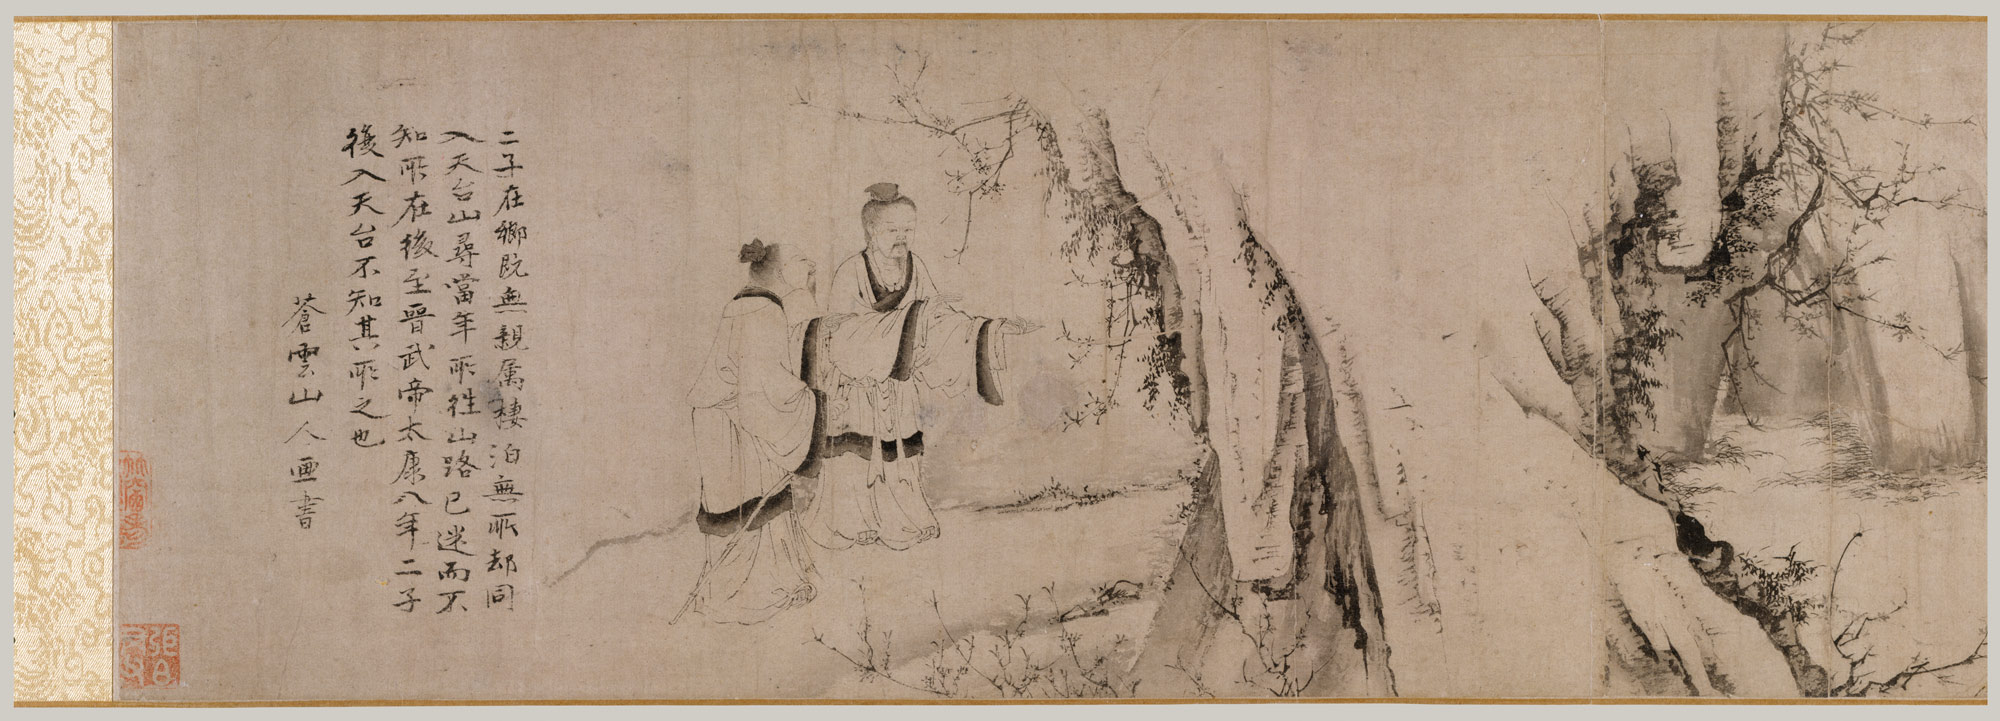 Liu Chen and Ruan Zhao Entering the Tiantai Mountains